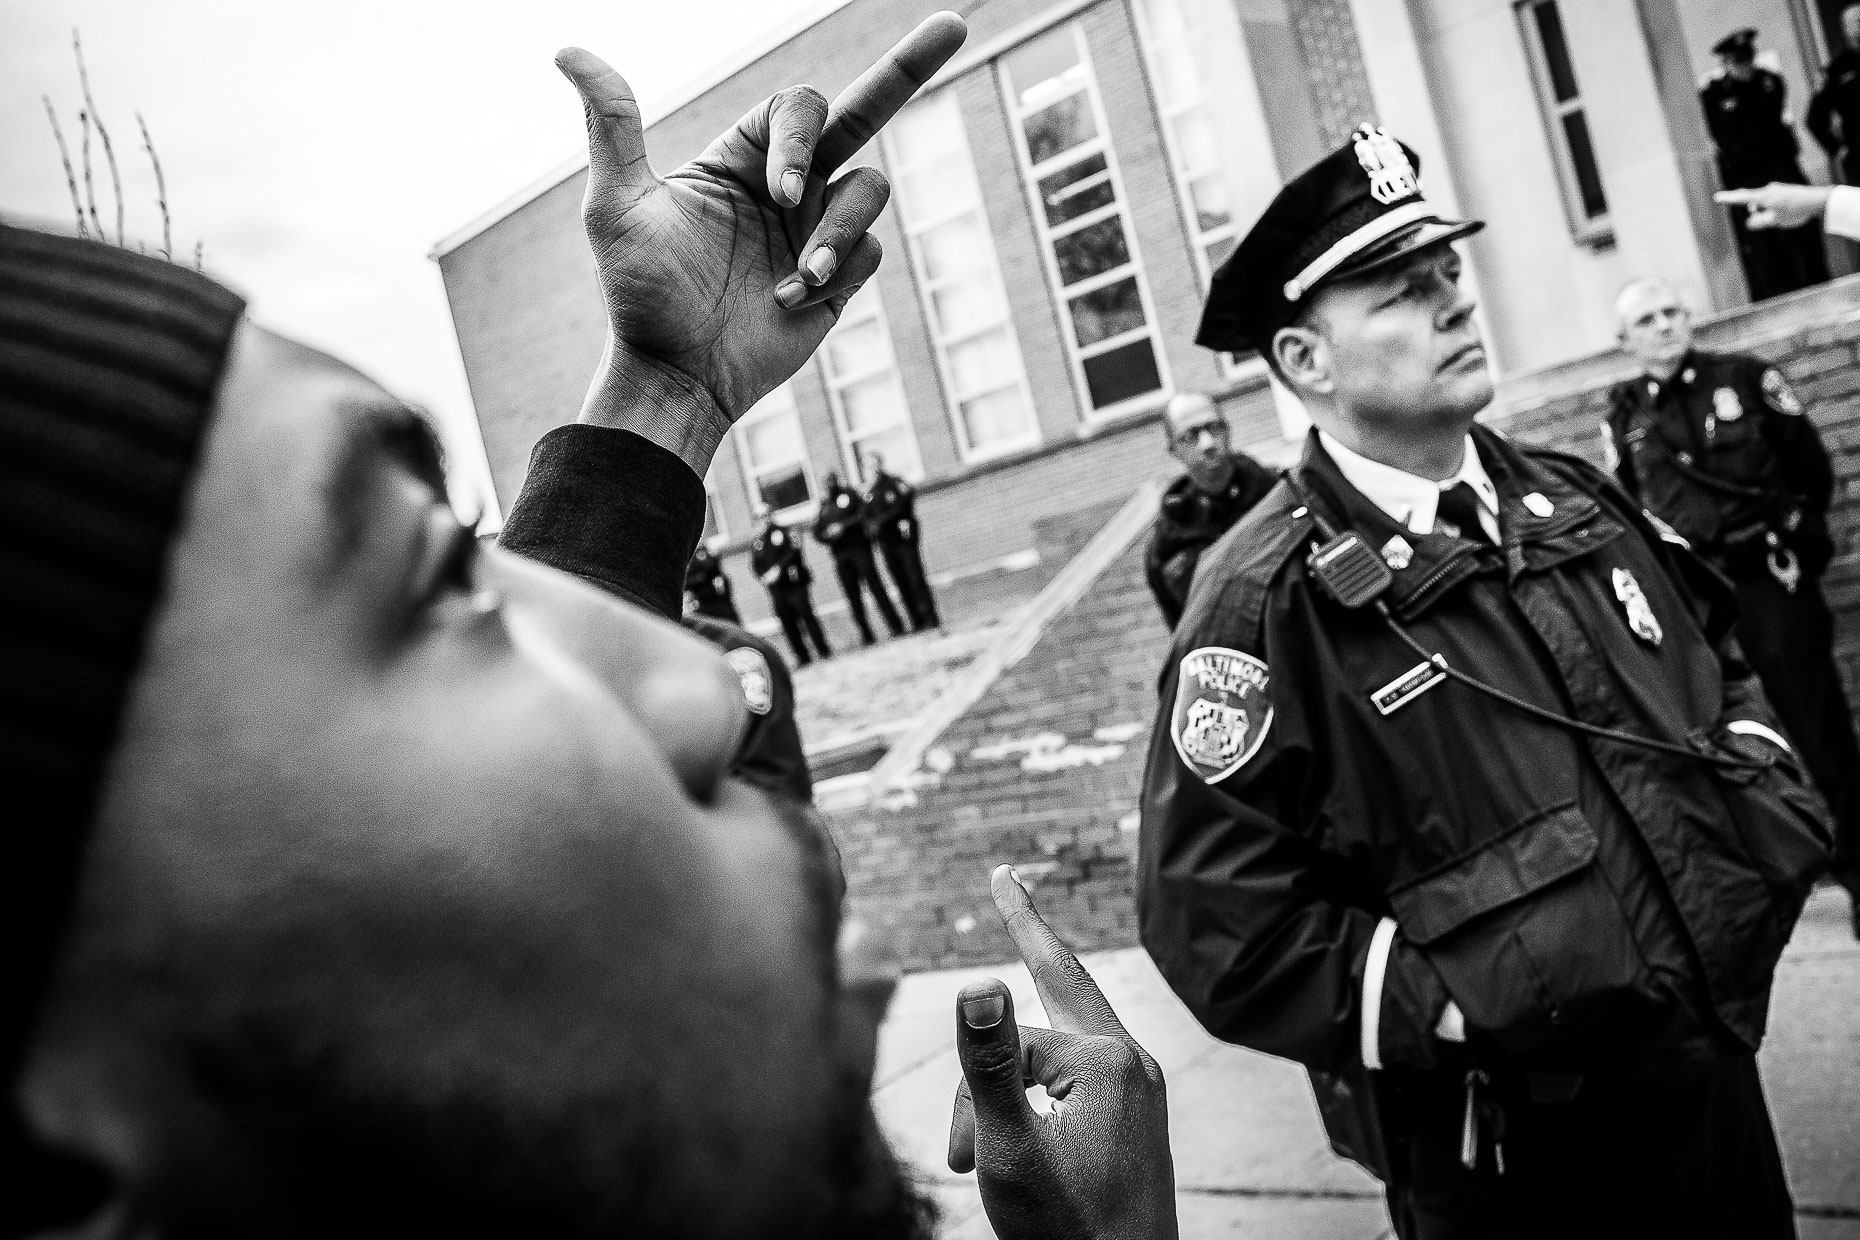 Baltimore Responds - The Baltimore Uprising - Photojournalism 13